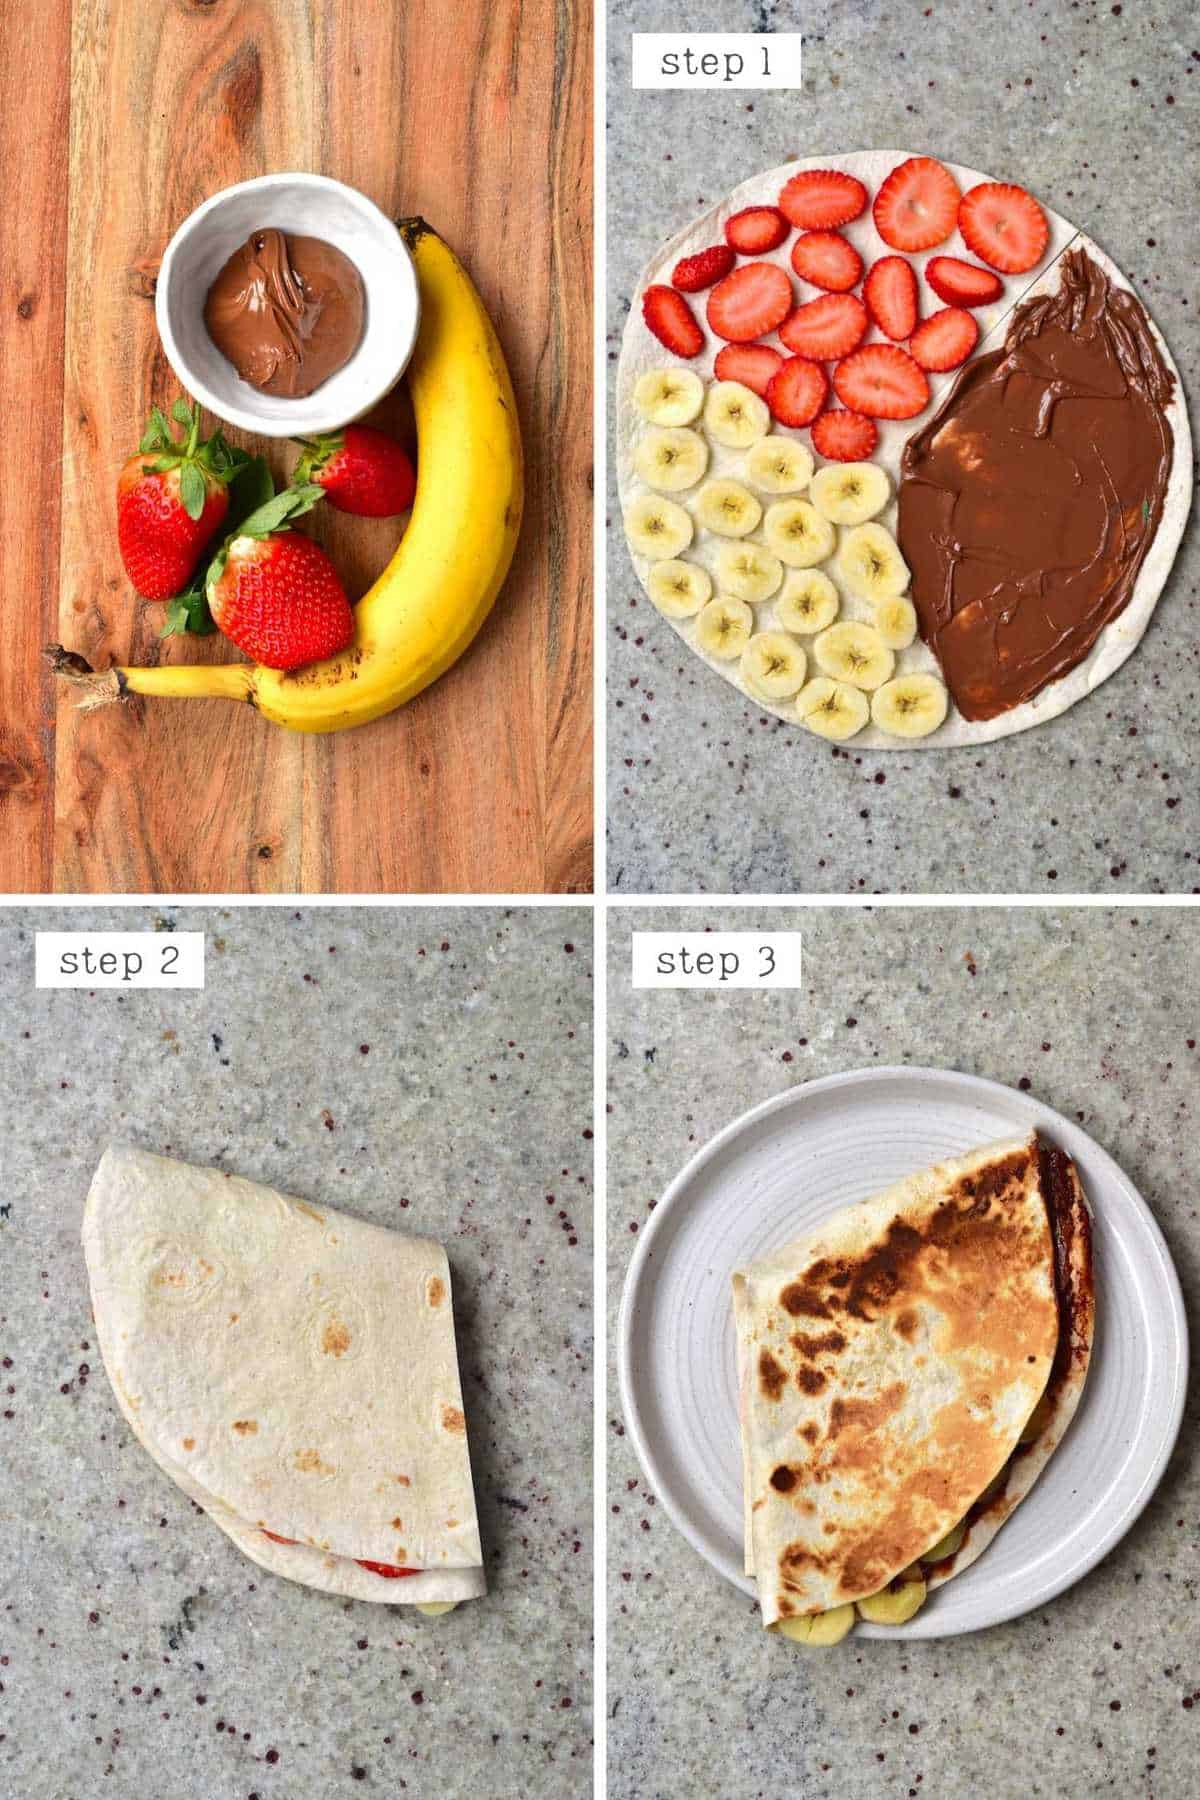 Steps for making Nutella Tortilla